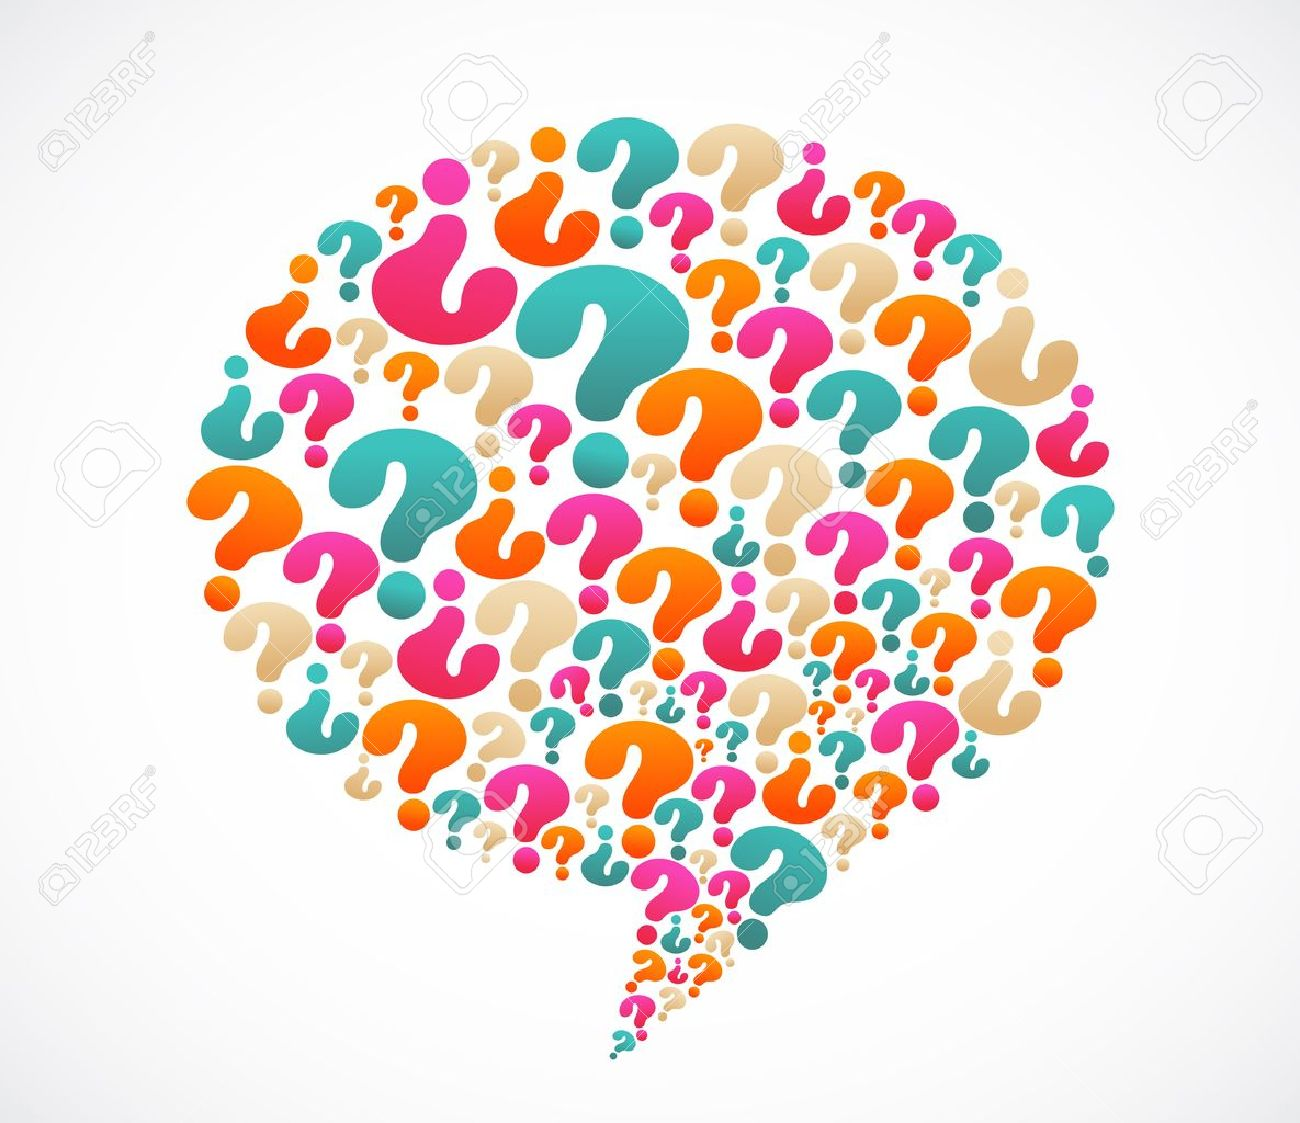 Speech bubble with question mark icons Stock Vector - 13955802